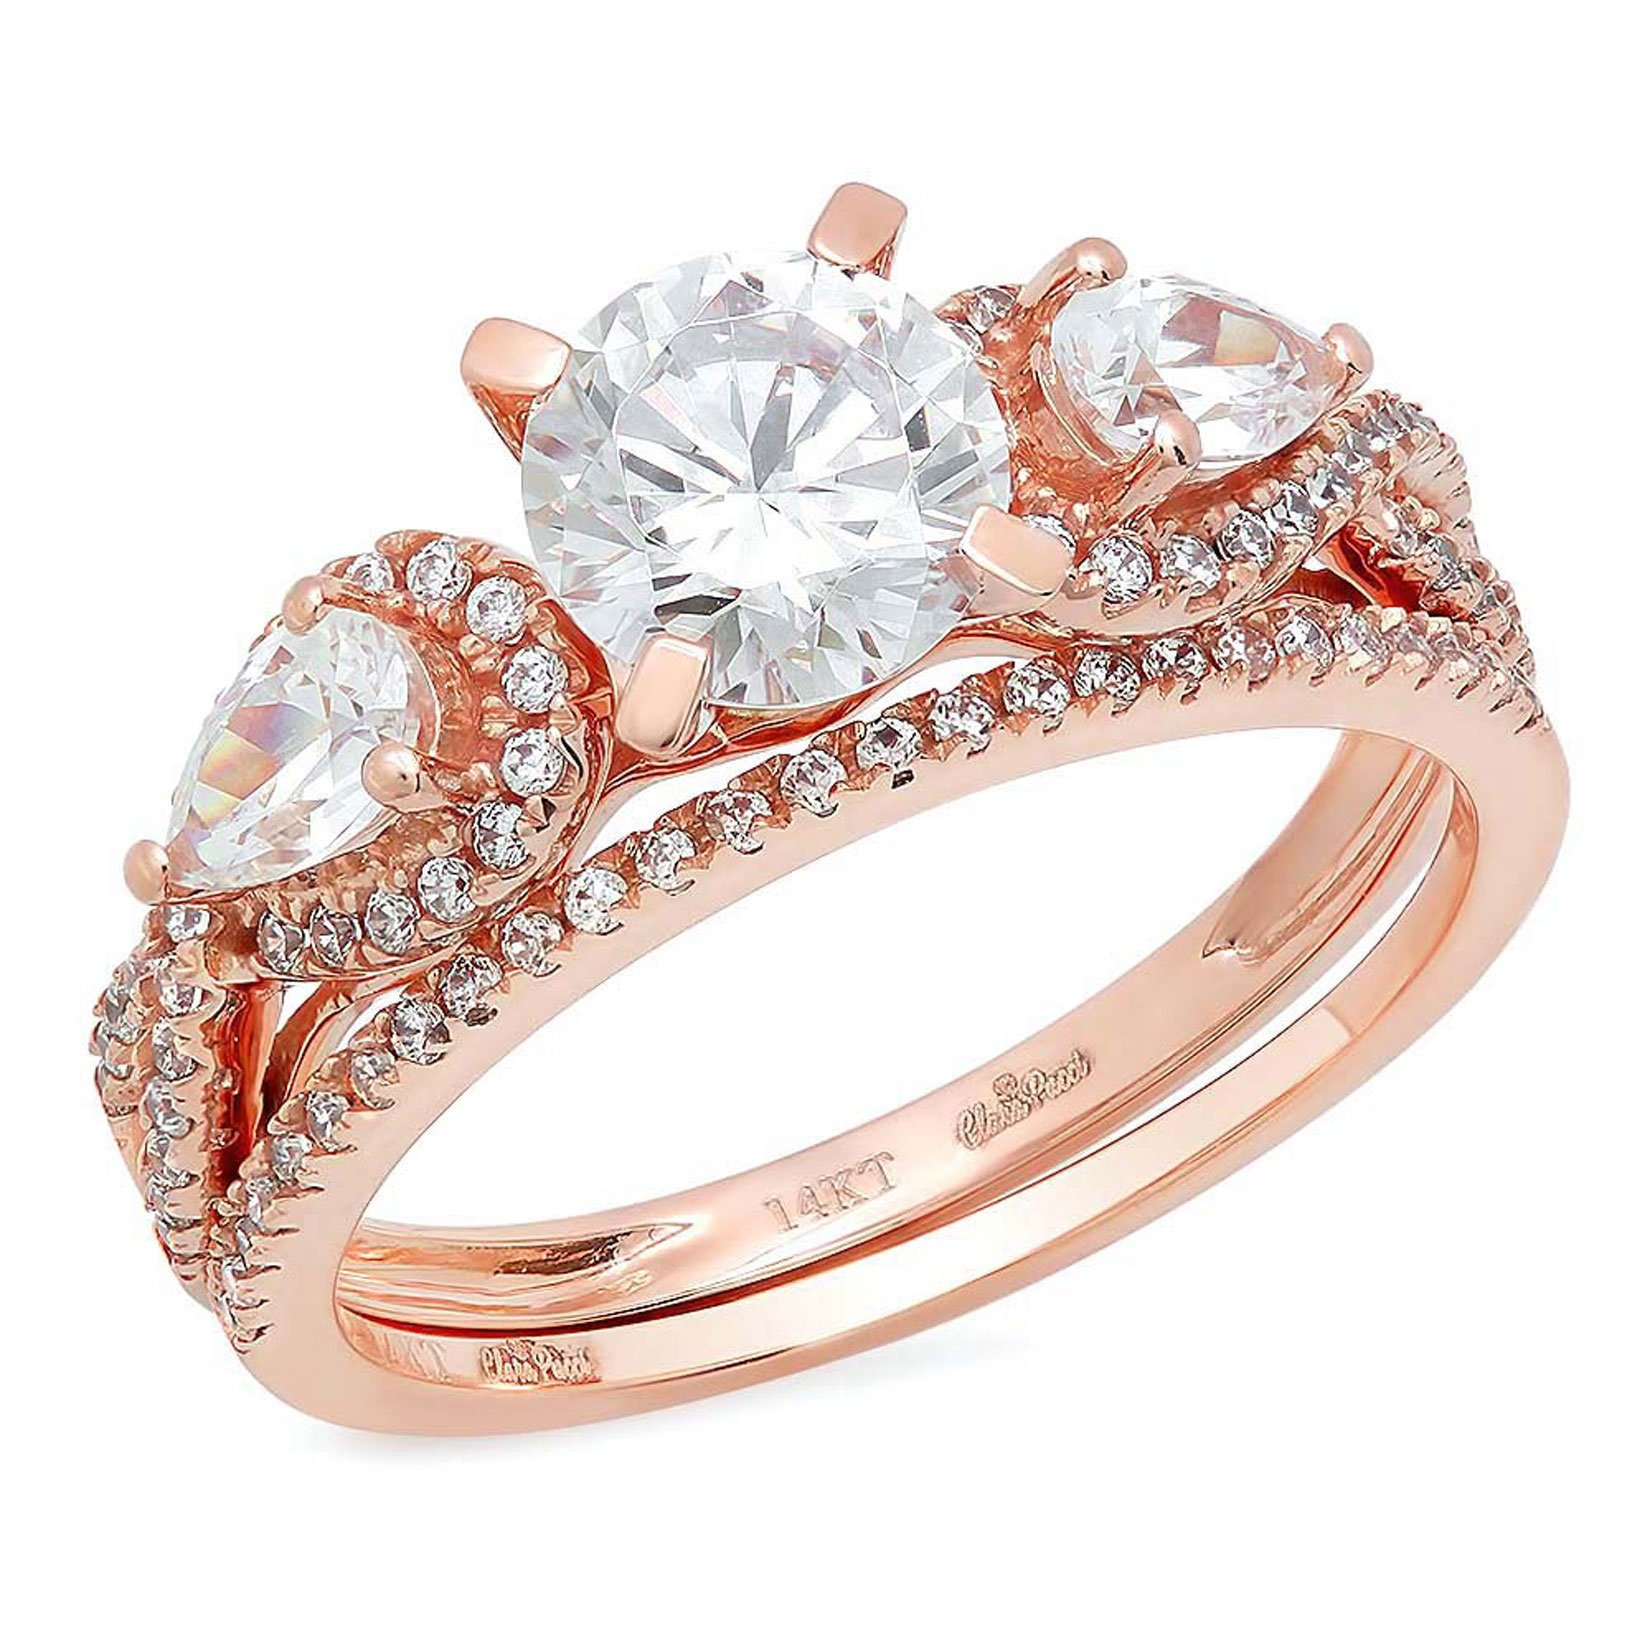 Clara Pucci 1.9 CT Round Pear Cut Pave Halo Bridal Engagement Wedding Ring band set 14k Rose Gold, Size 6.5